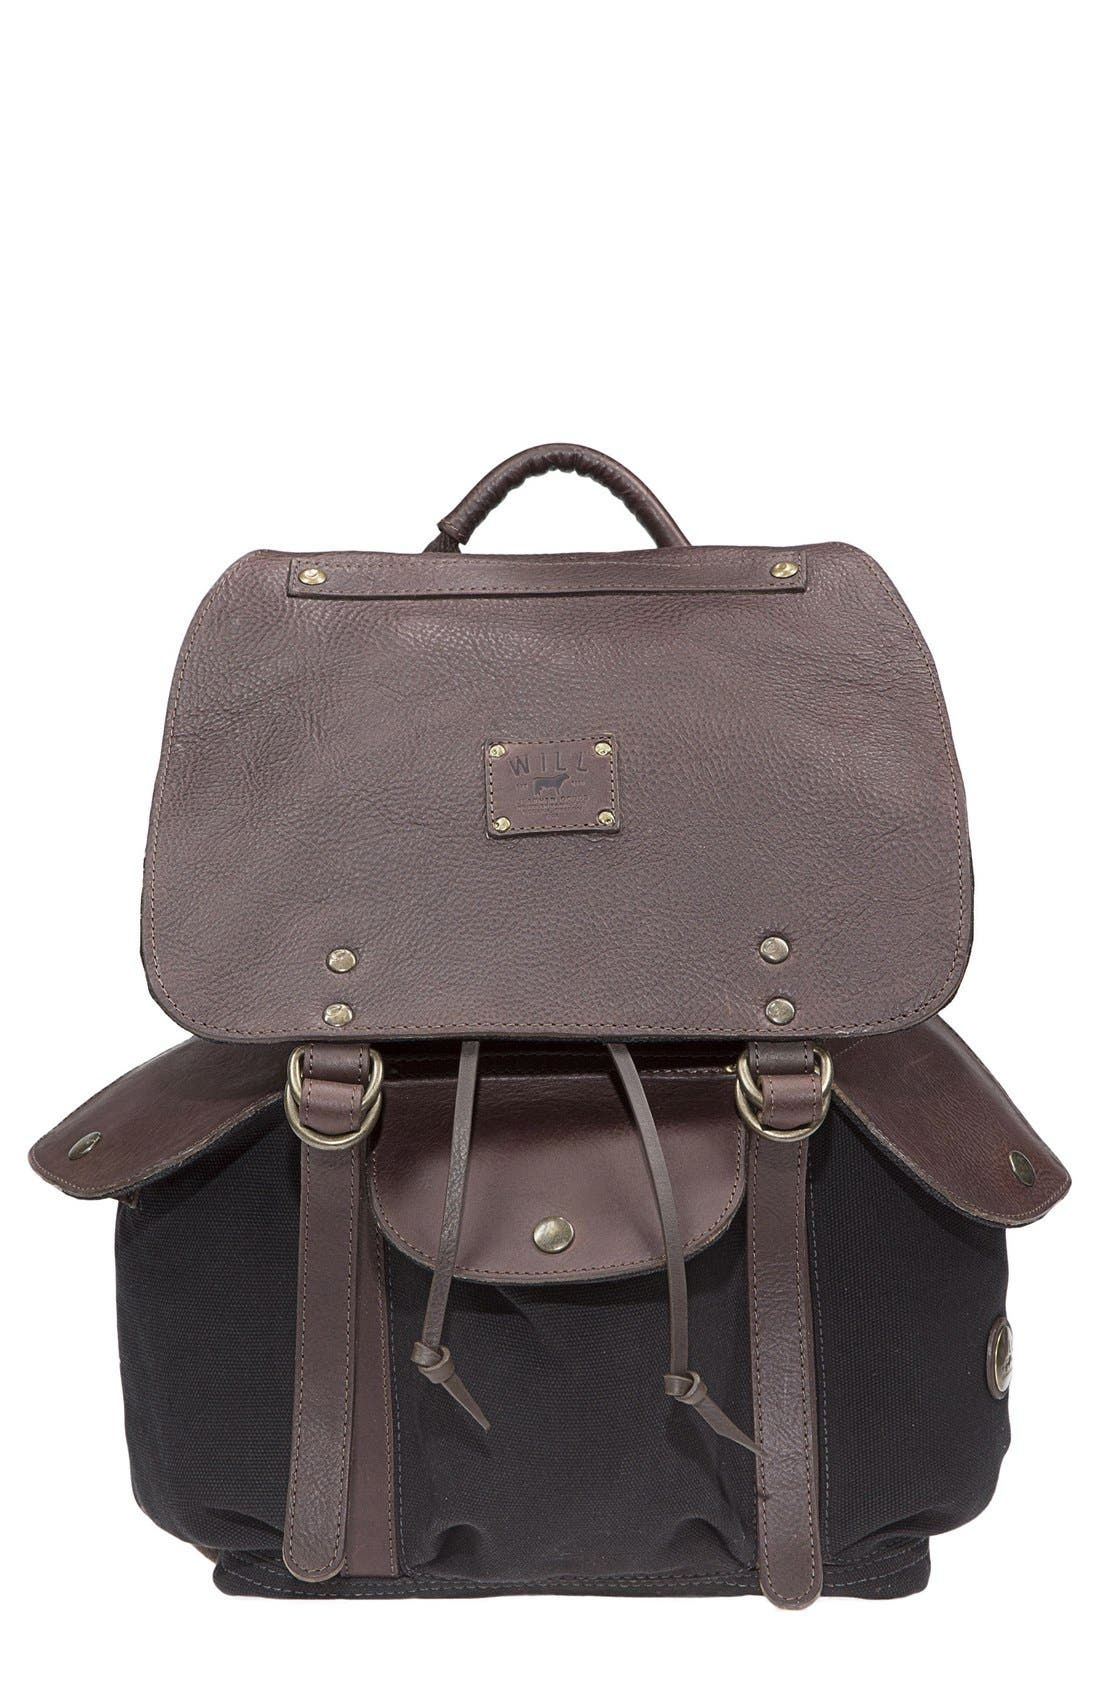 Alternate Image 1 Selected - Will Leather Goods 'Lennon' Backpack